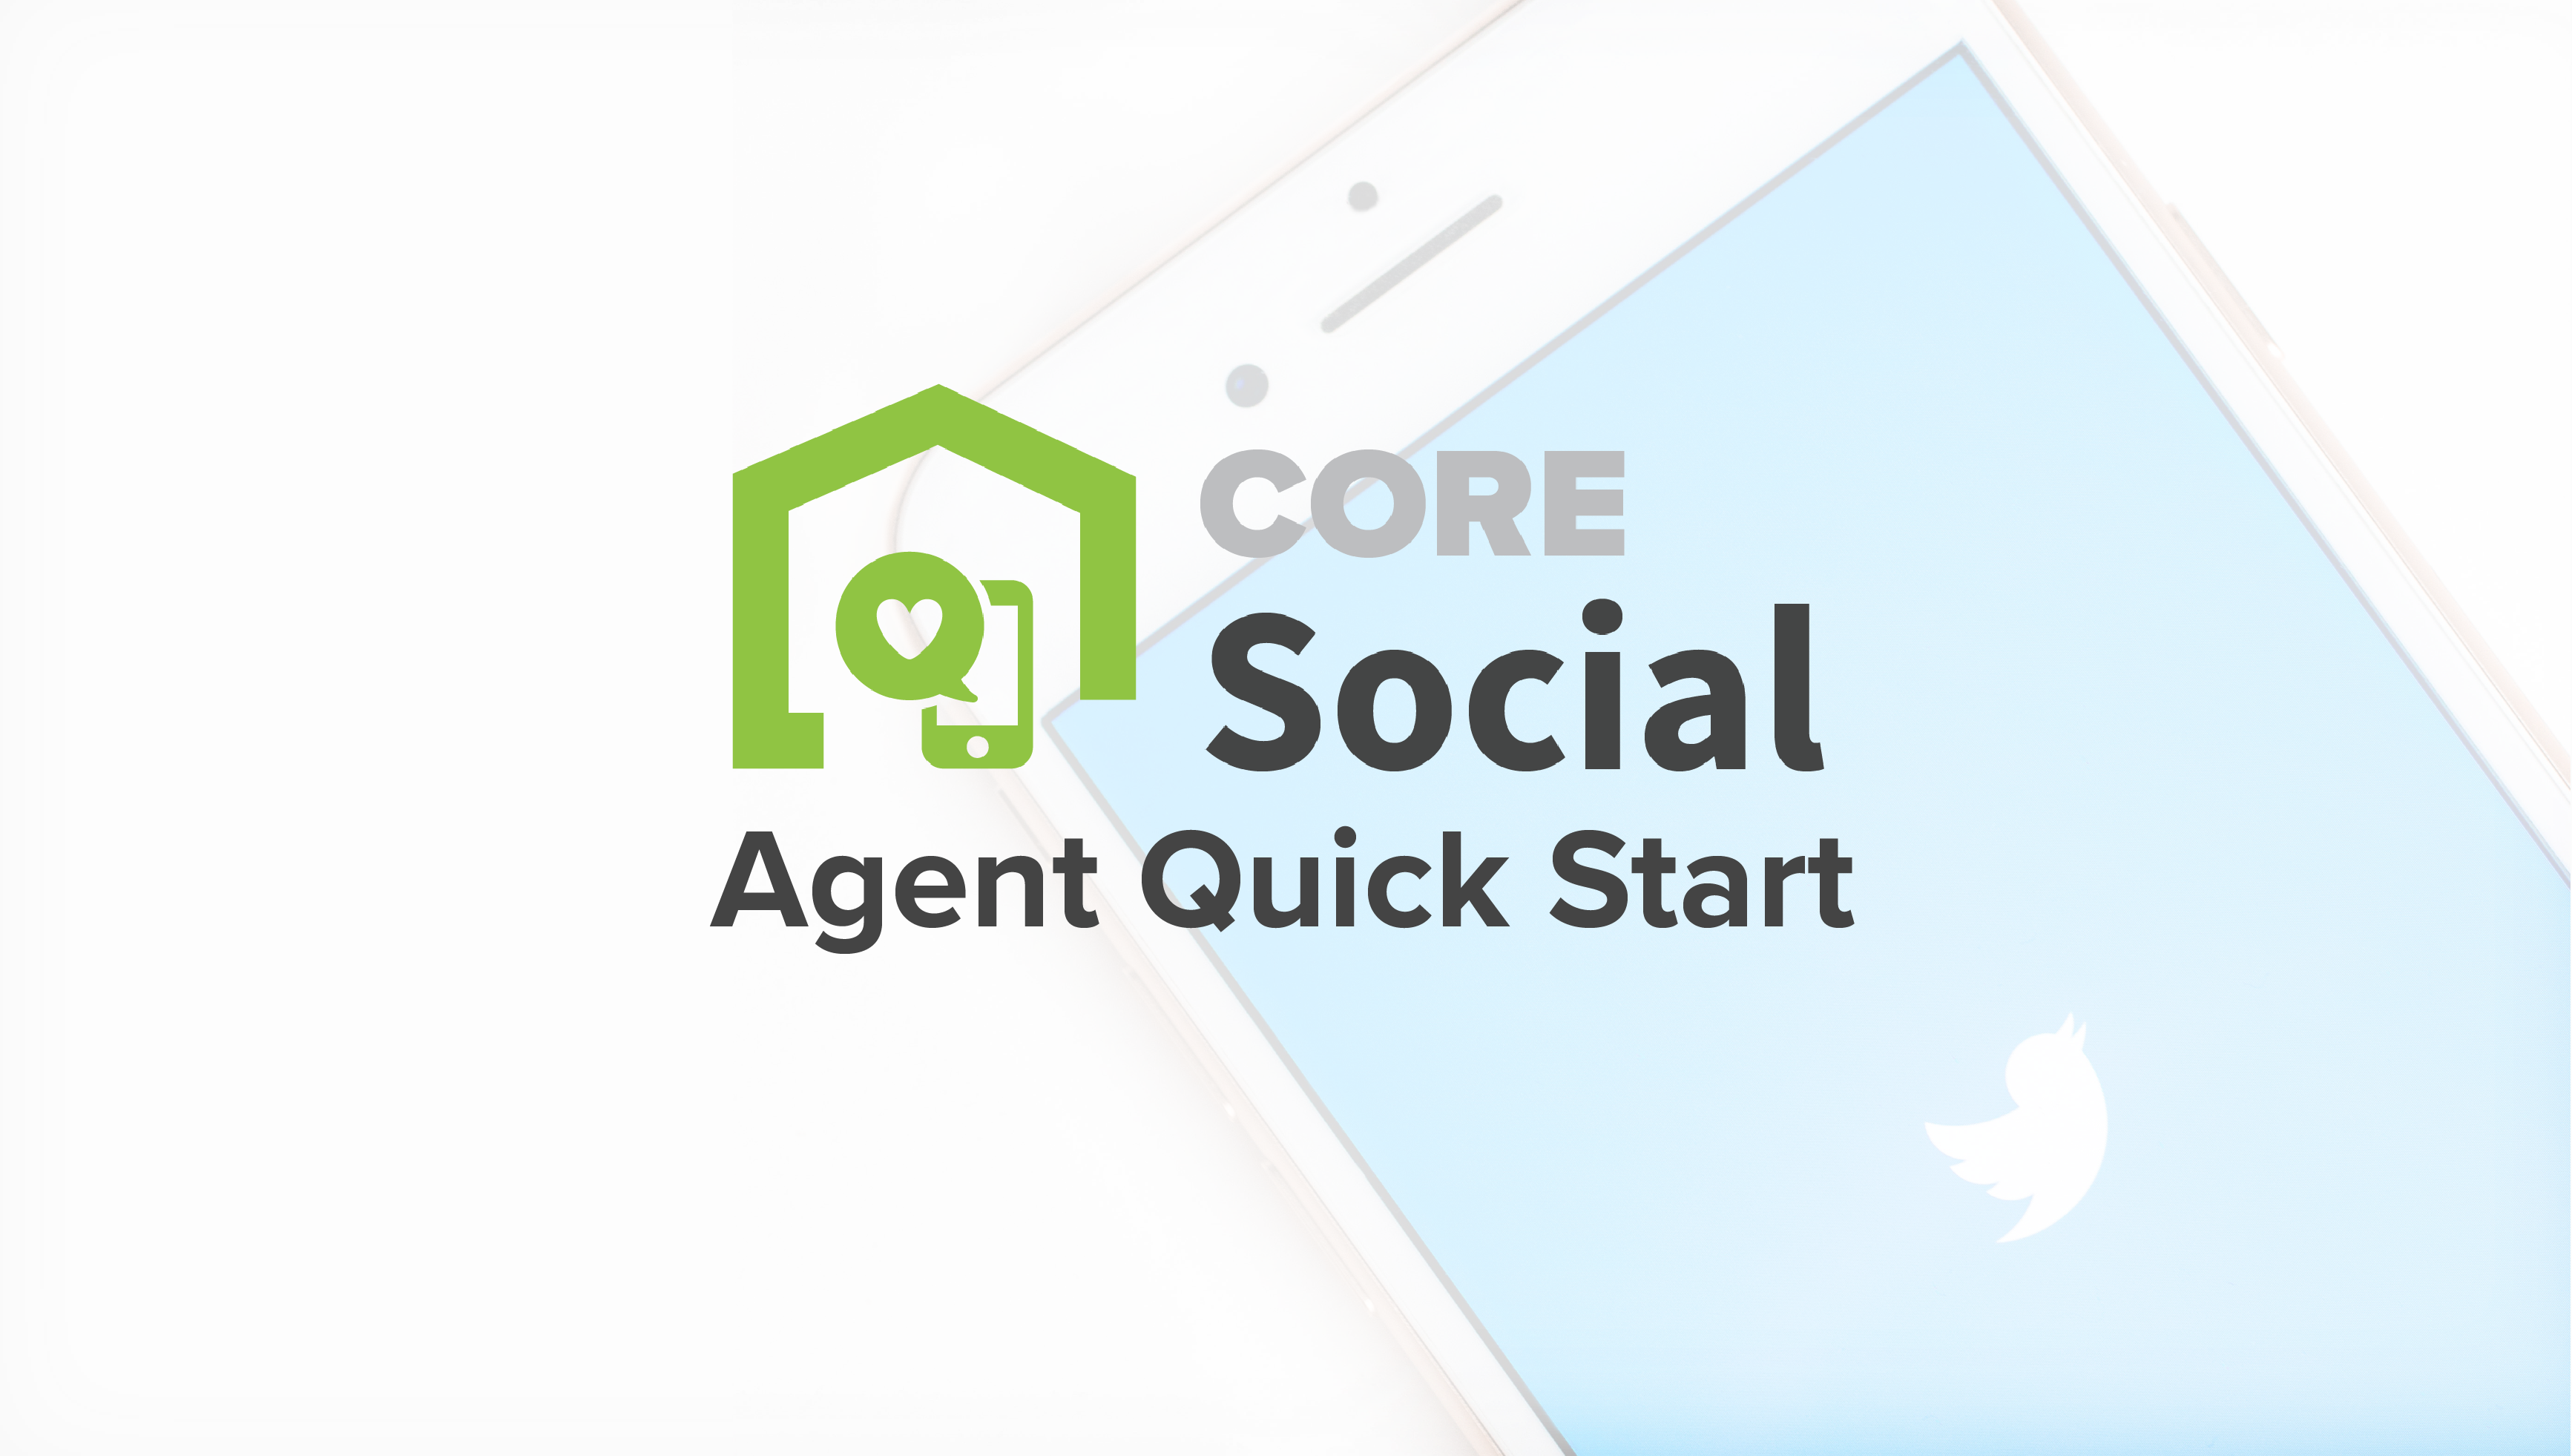 CORE Social Agent Quick Start (Formerly PIXsocial)